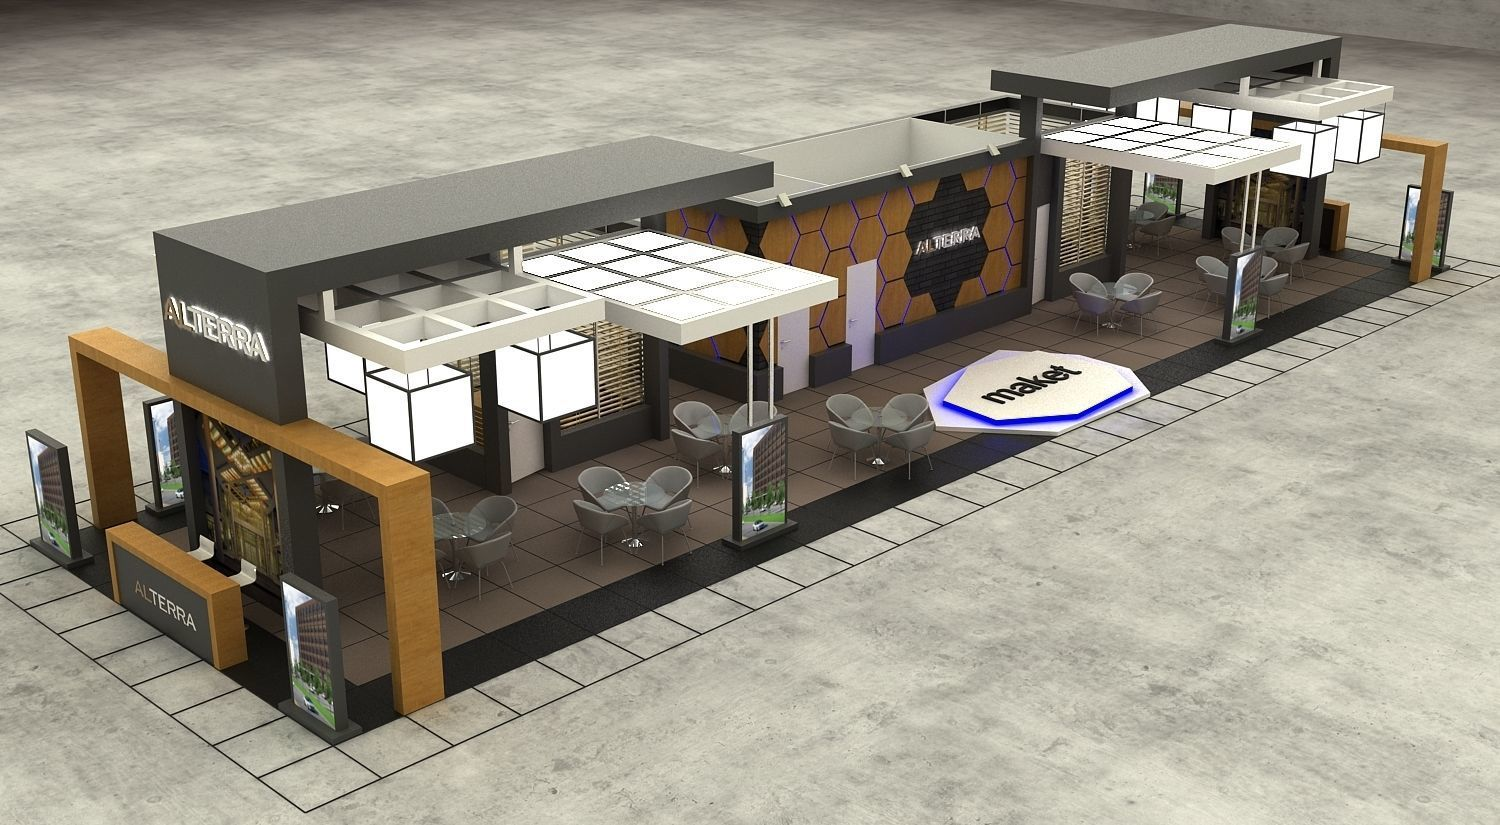 Exhibition Stall Size 29 m x 8 m  Height 366 cm